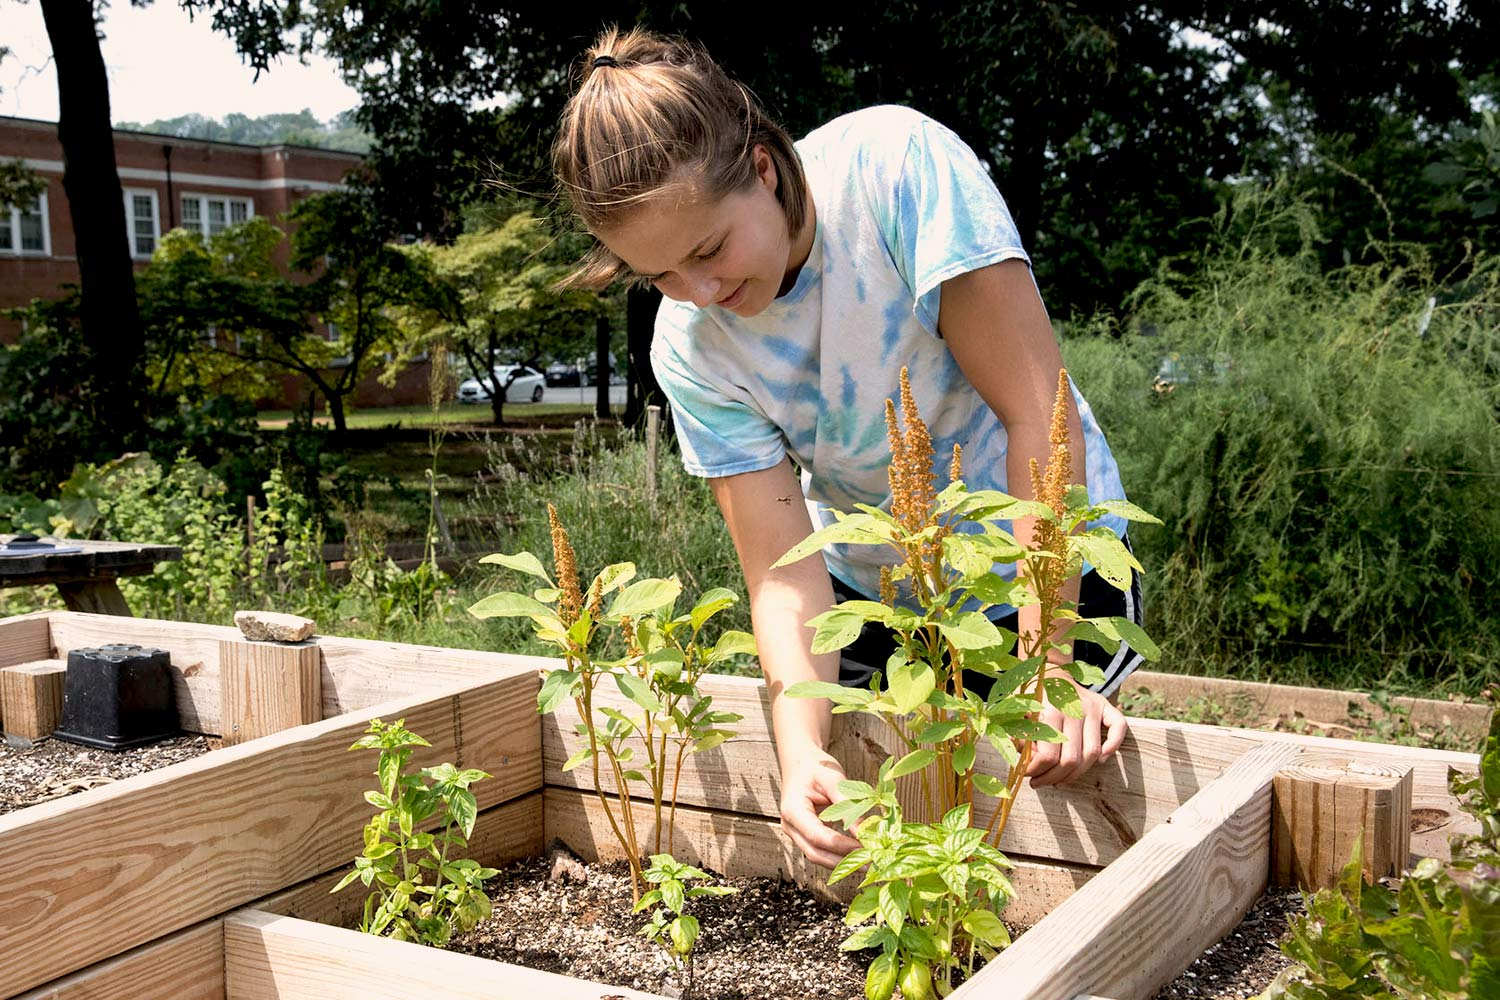 : A wheelchair-accessible garden bed, a project completed by students in the UVA School of Architecture's Freedom By Design community service program, is one of many service projects that have contributed to the functioning of the Community Garden.